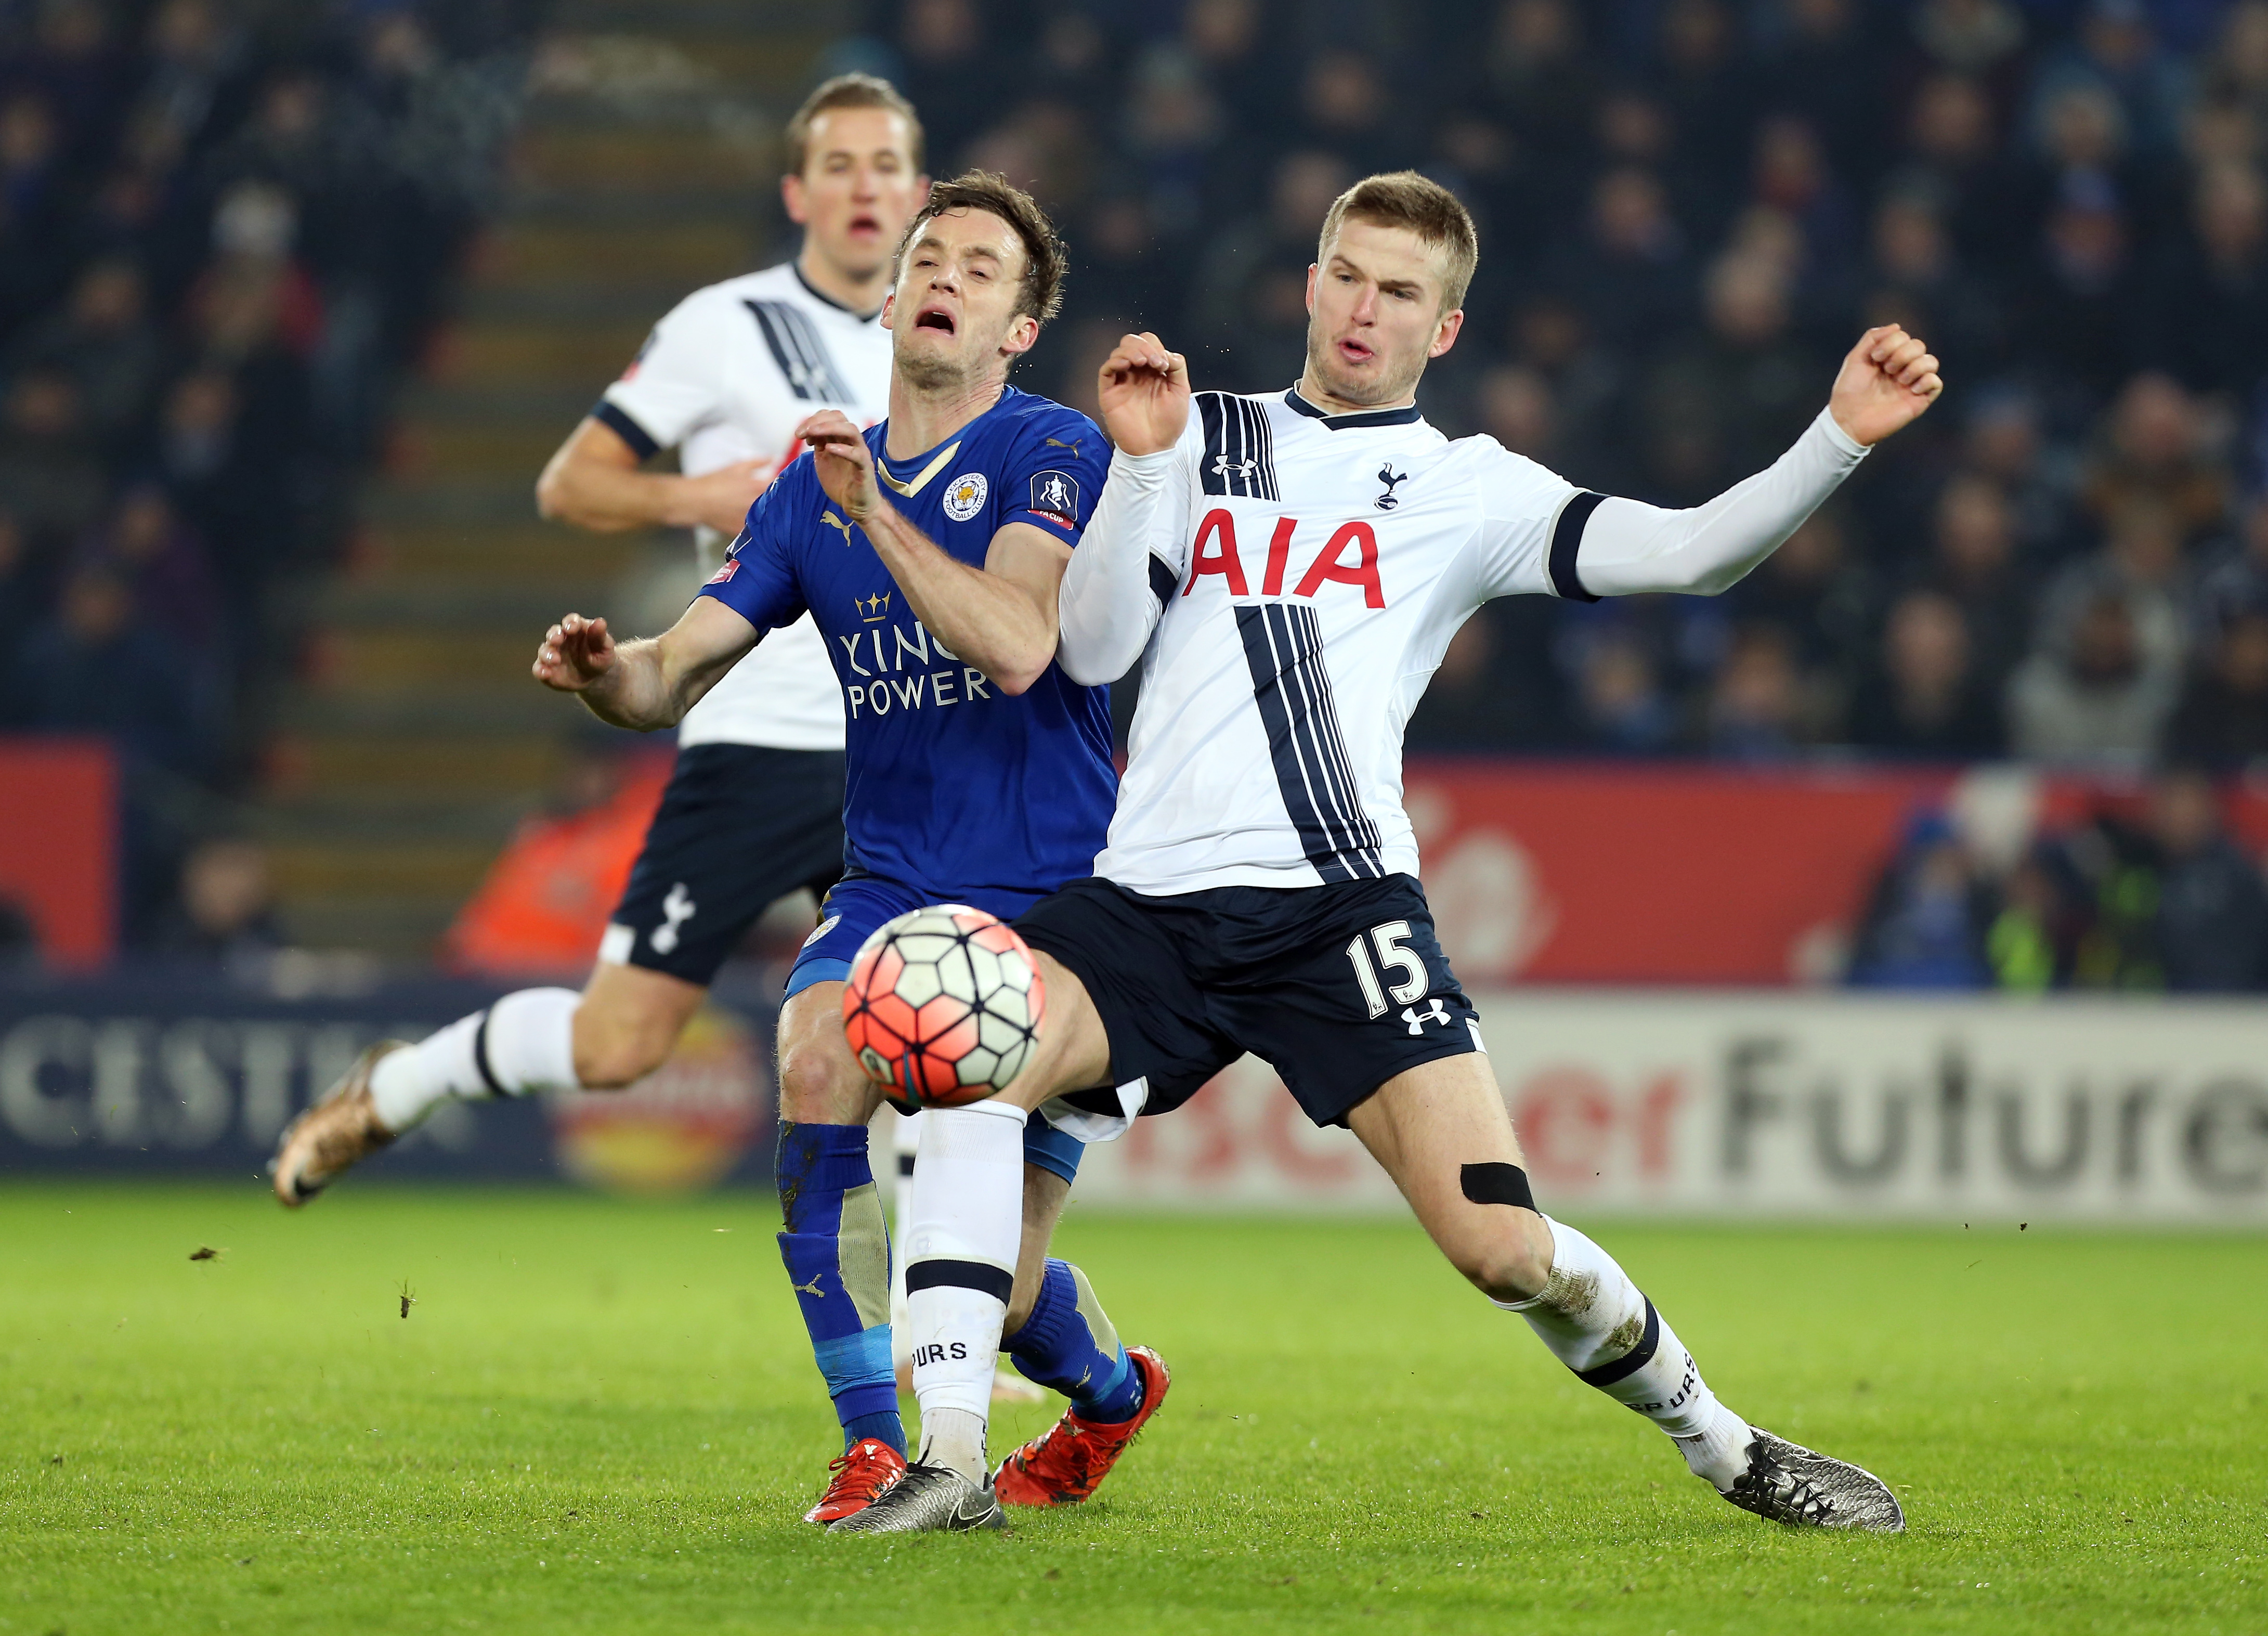 LEICESTER ENGLAND- JANUARY 20: Andy King of Leicester City in action with Eric Dier of Tottenham Hotspur during The Emirates FA Cup Third Round Replay match between Leicester City and Tottenham at the King Power Stadium on January 20, 2016 in Leiceste